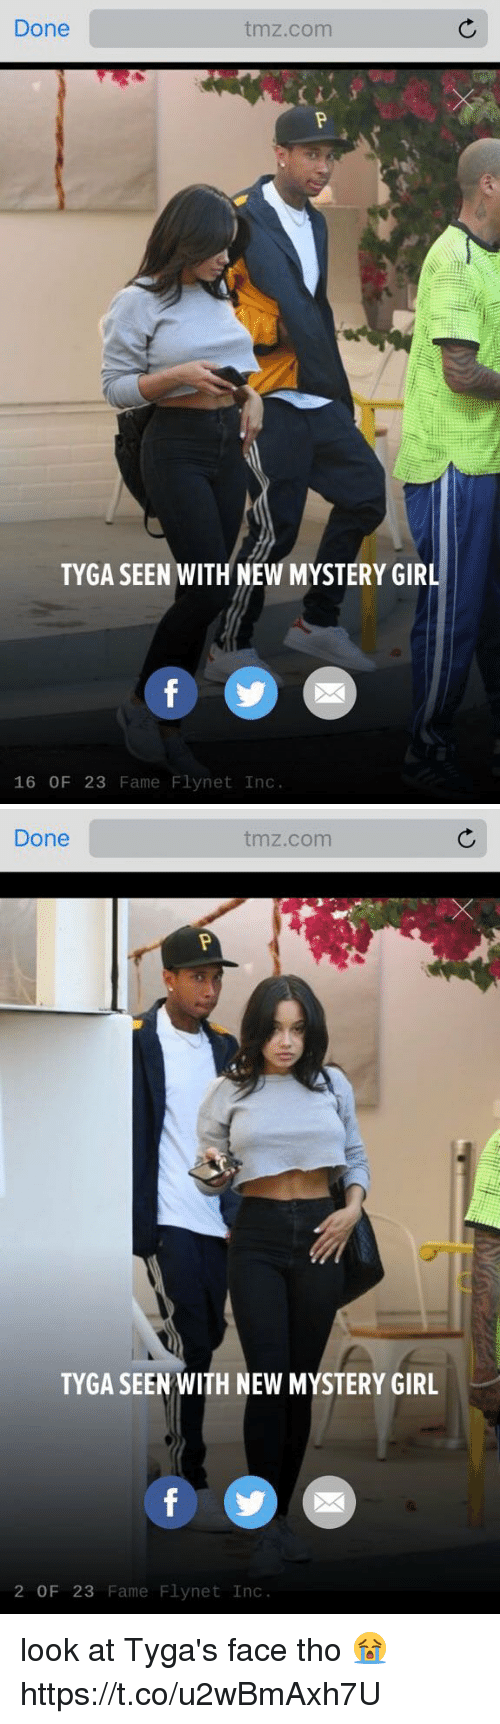 Funny, Tyga, and Girl: Done  tmz.com  TYGA SEEN WITH NEW MYSTERY GIRL  16 OF 23  Fame Flynet Inc   Done  tmz.com  TYGA SEEN WITH NEW MYSTERY GIRL  2 OF 23 Fame Flynet Inc. look at Tyga's face tho 😭 https://t.co/u2wBmAxh7U